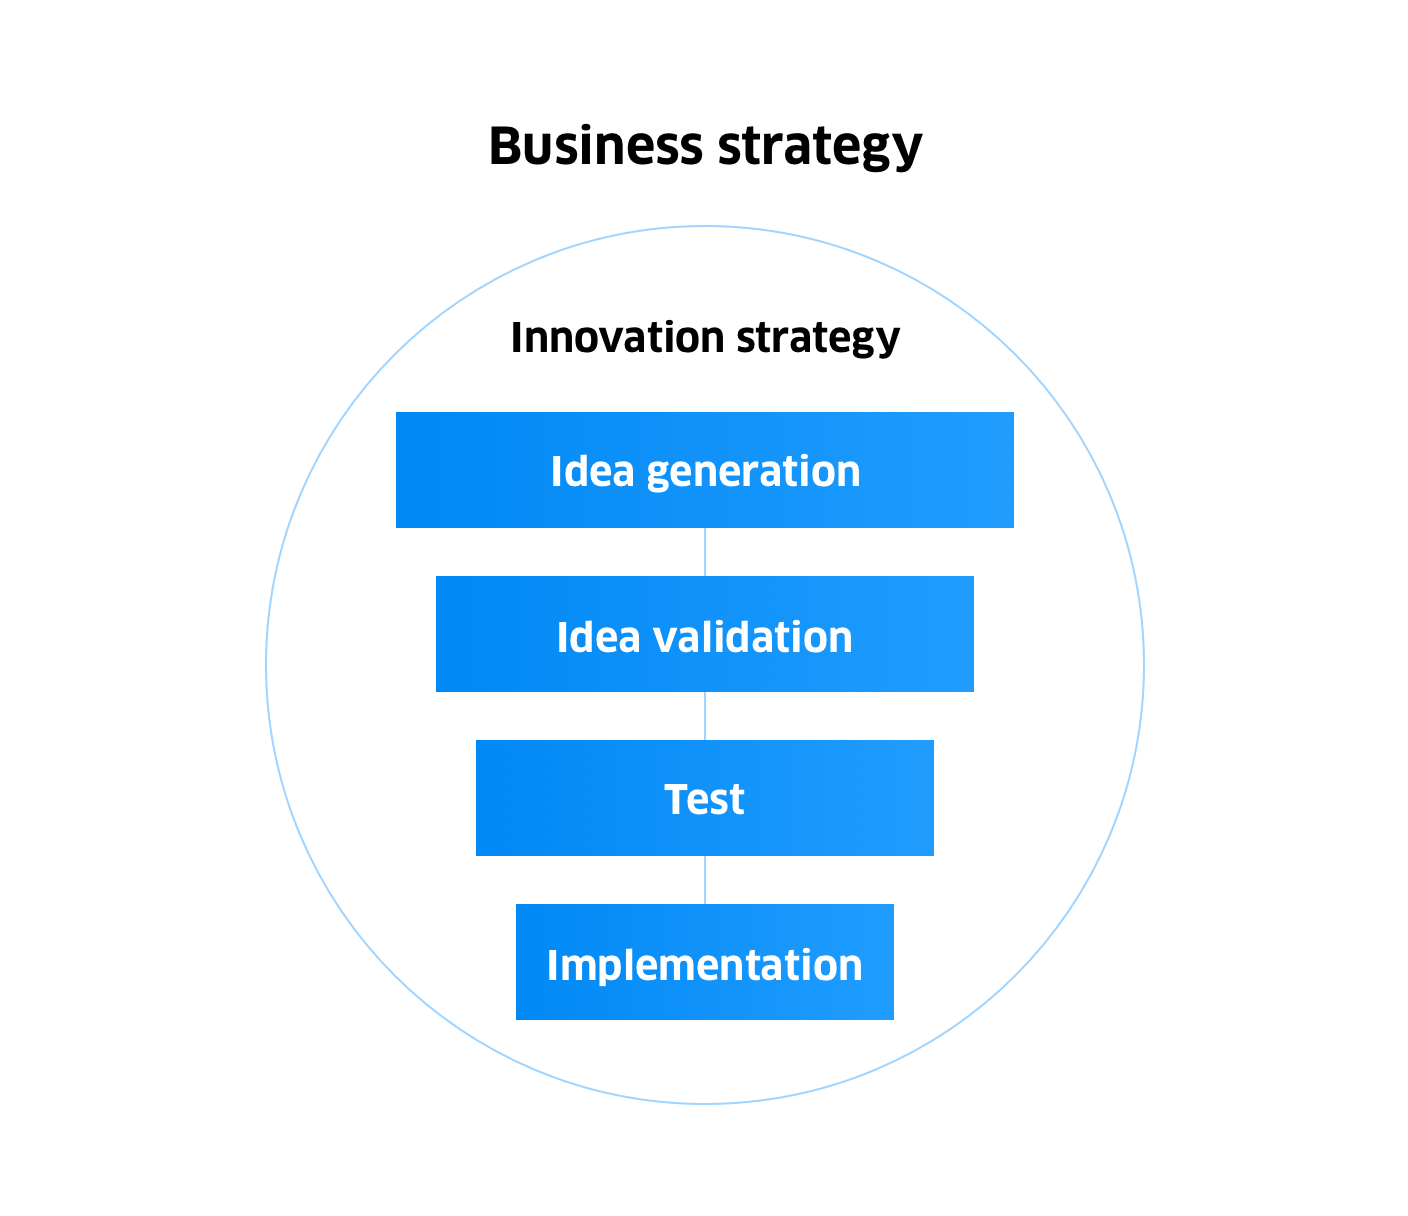 Image showing 4 stages of delivery within the business strategy